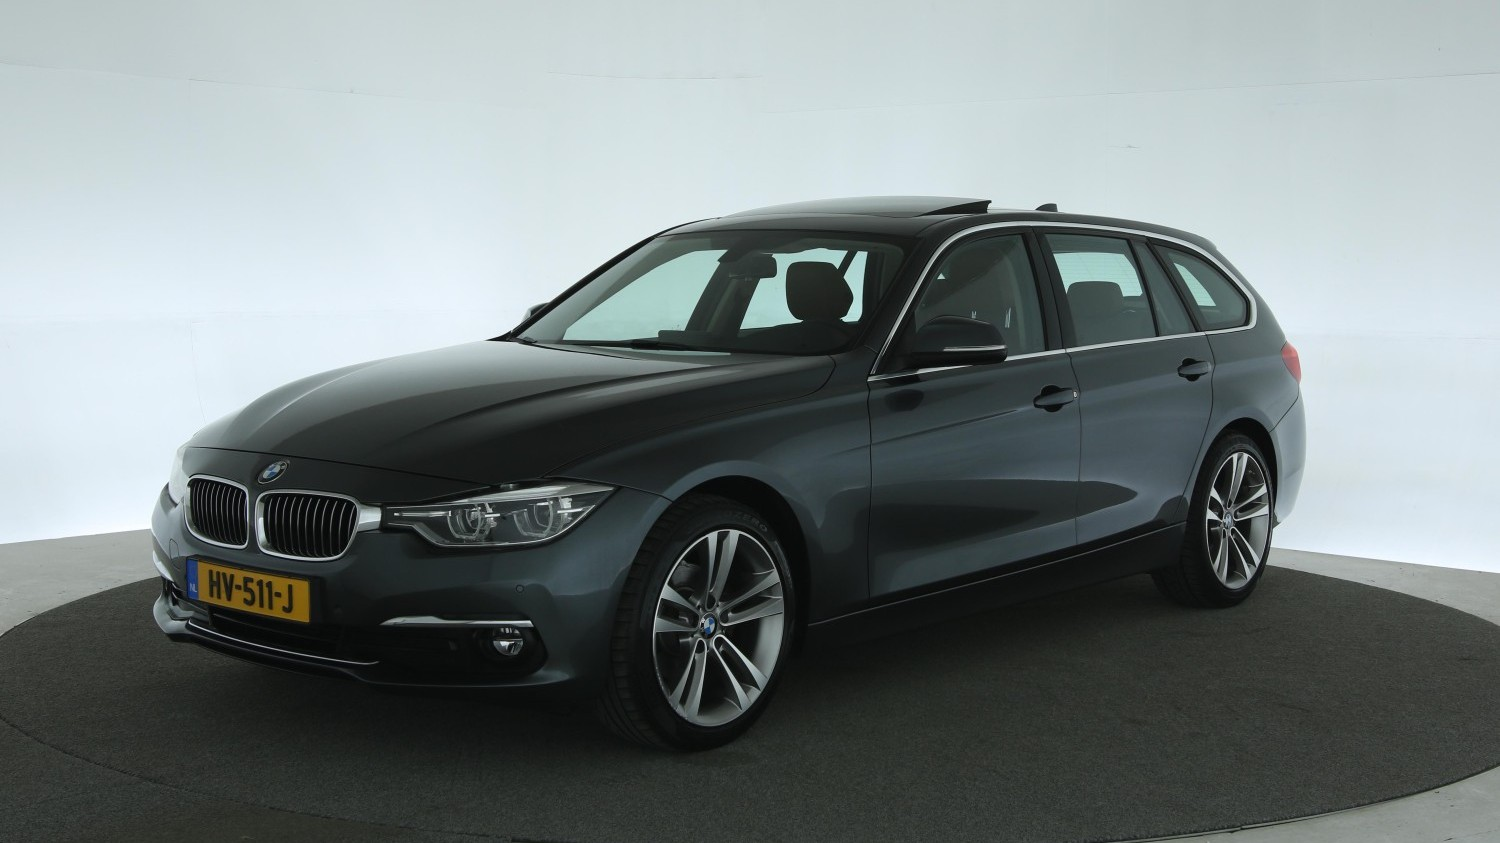 BMW 3-serie Station 2015 HV-511-J 1